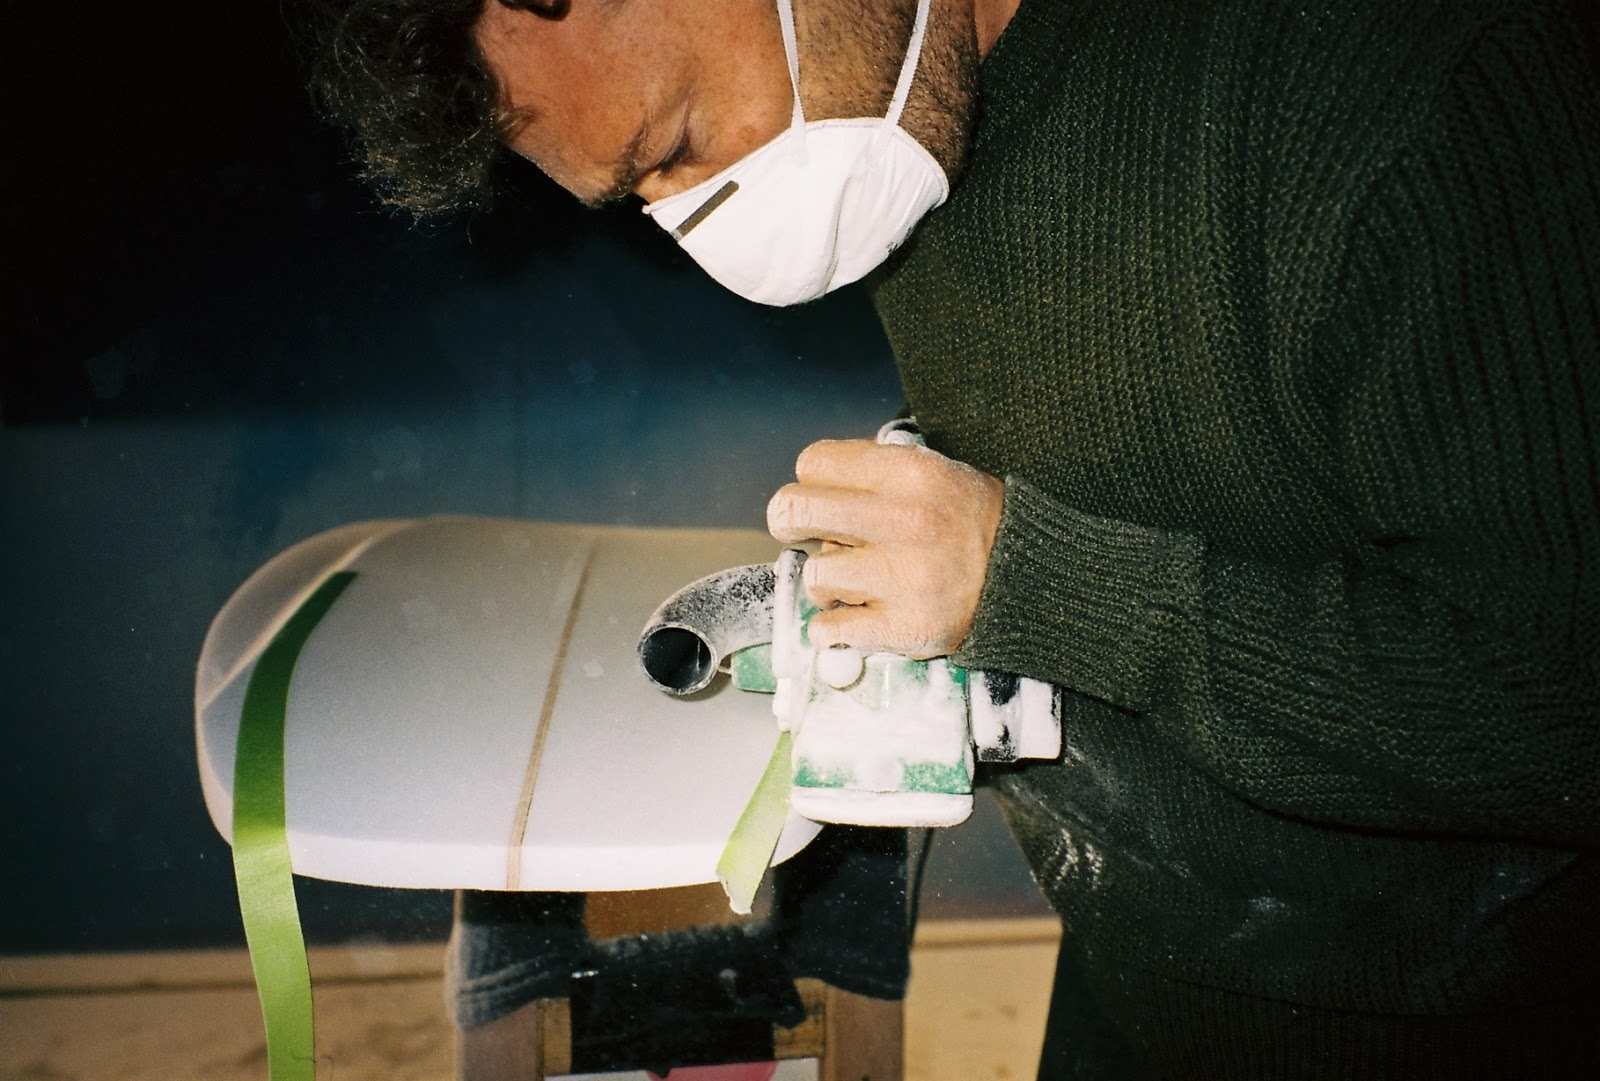 Vincent Lemanceau, shaper at Surfin Estate - hossegor